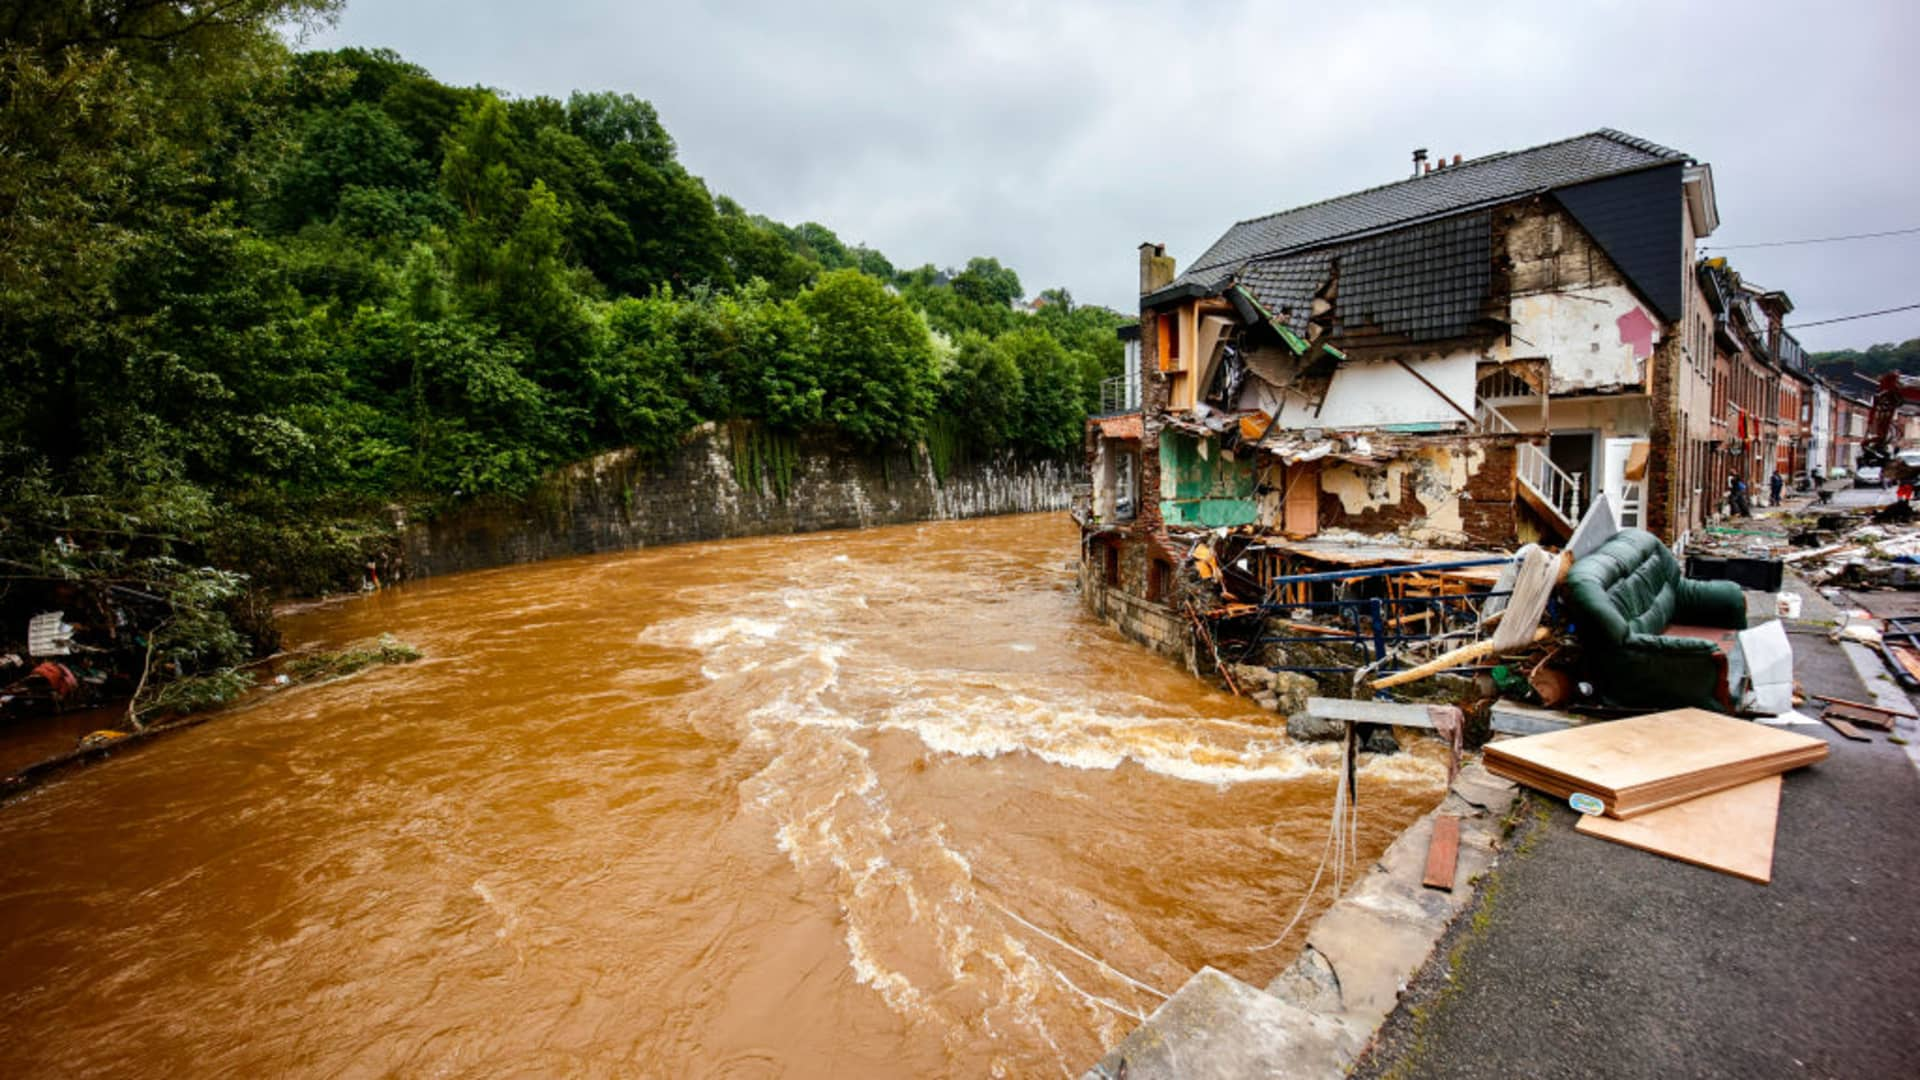 ENSIVAL, BELGIUM - JULY 16: Citizens are cleaning up their flooded houses on July 16, 2021 in Ensival, Belgium.